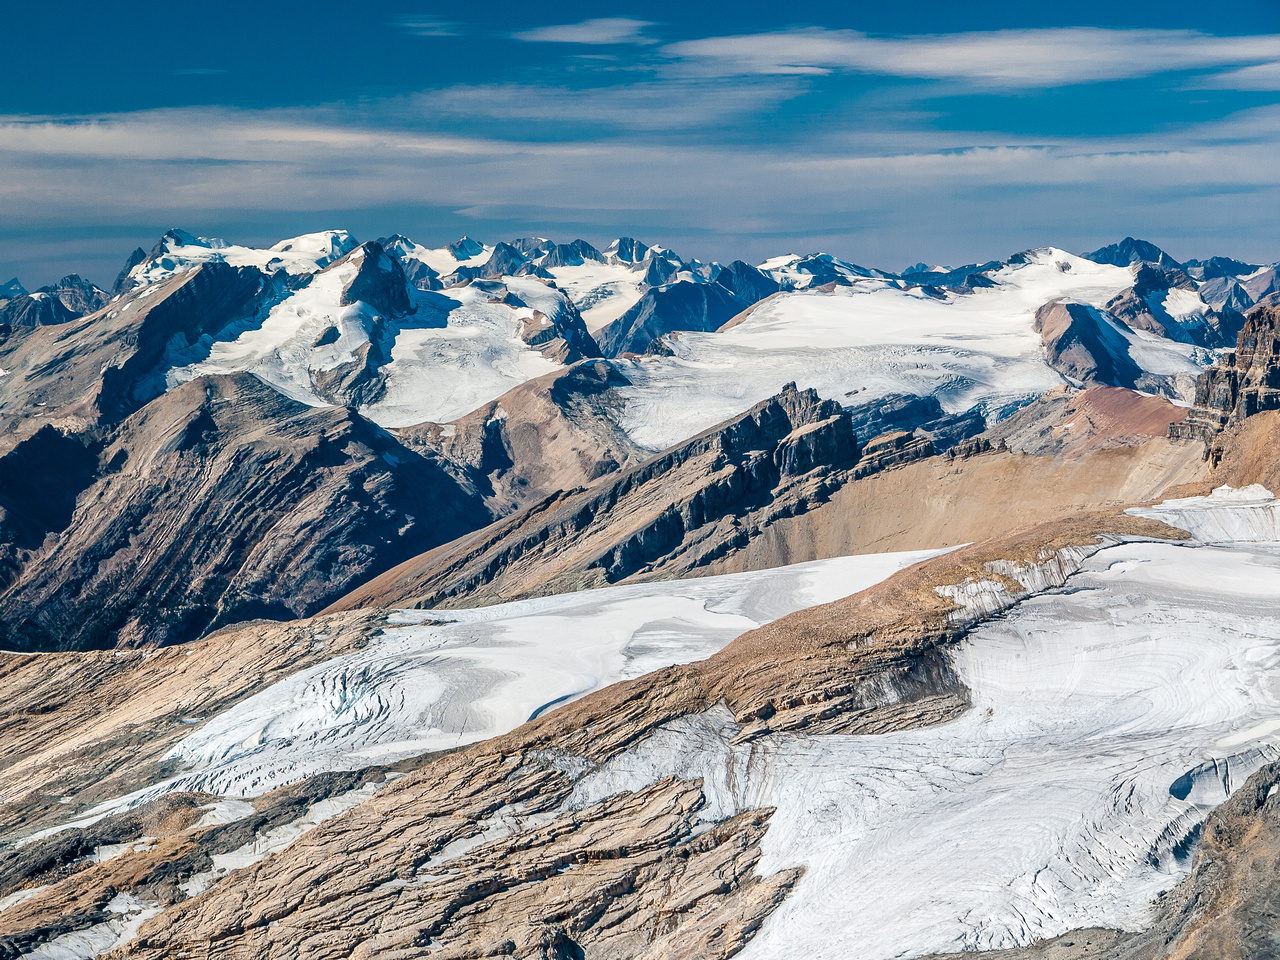 Trolltinder in the foreground with Yoho, Collie, Des Poilus and Arete (R to L) and the Mummery Group in the far distance.